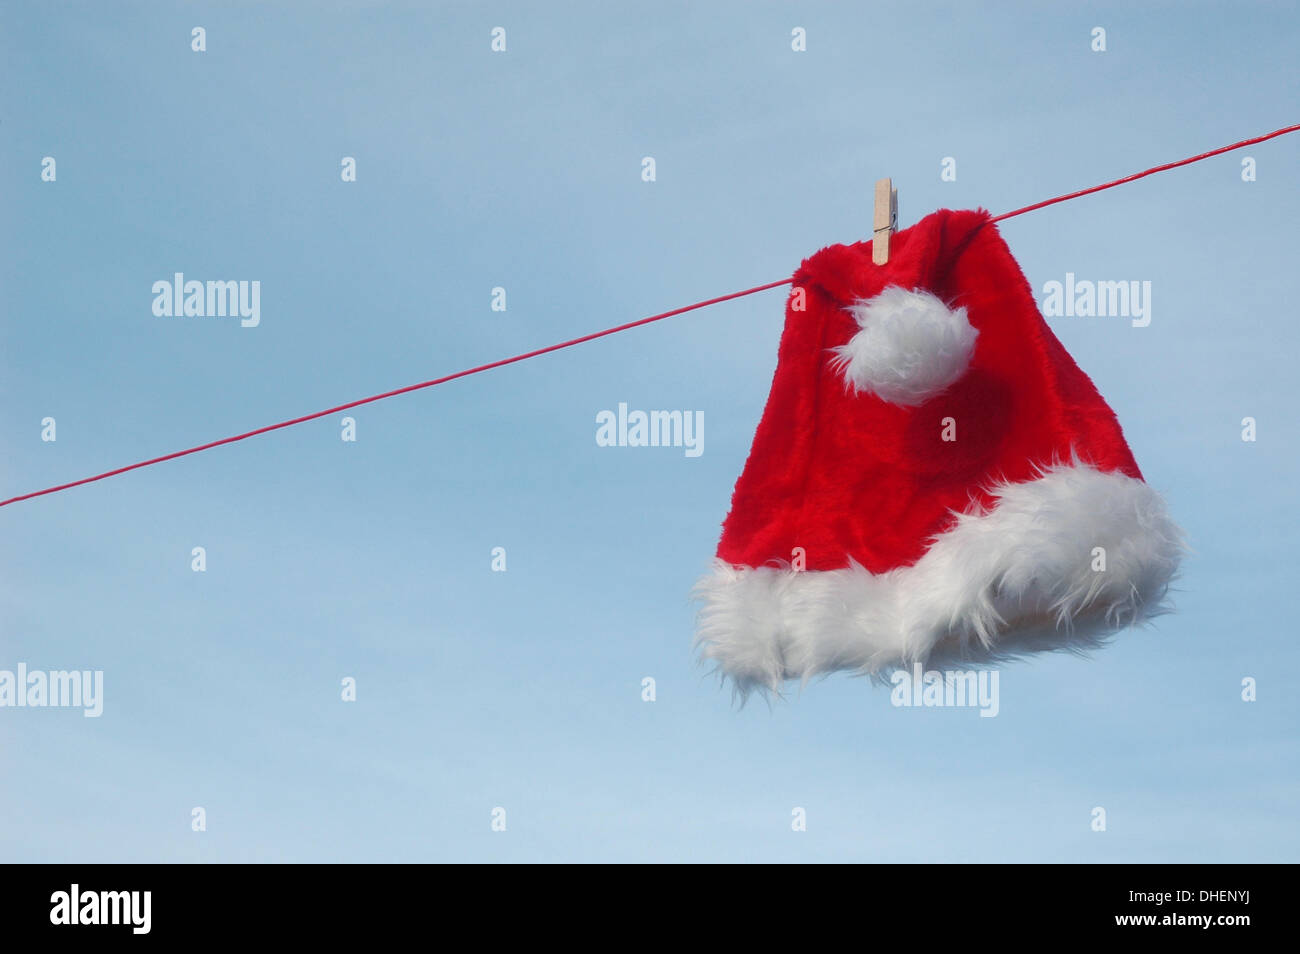 Illustration - A Santa Claus hat is pictured on a clothesline, 28 December 2009. Photo: Berliner Verlag/Steinach Stock Photo